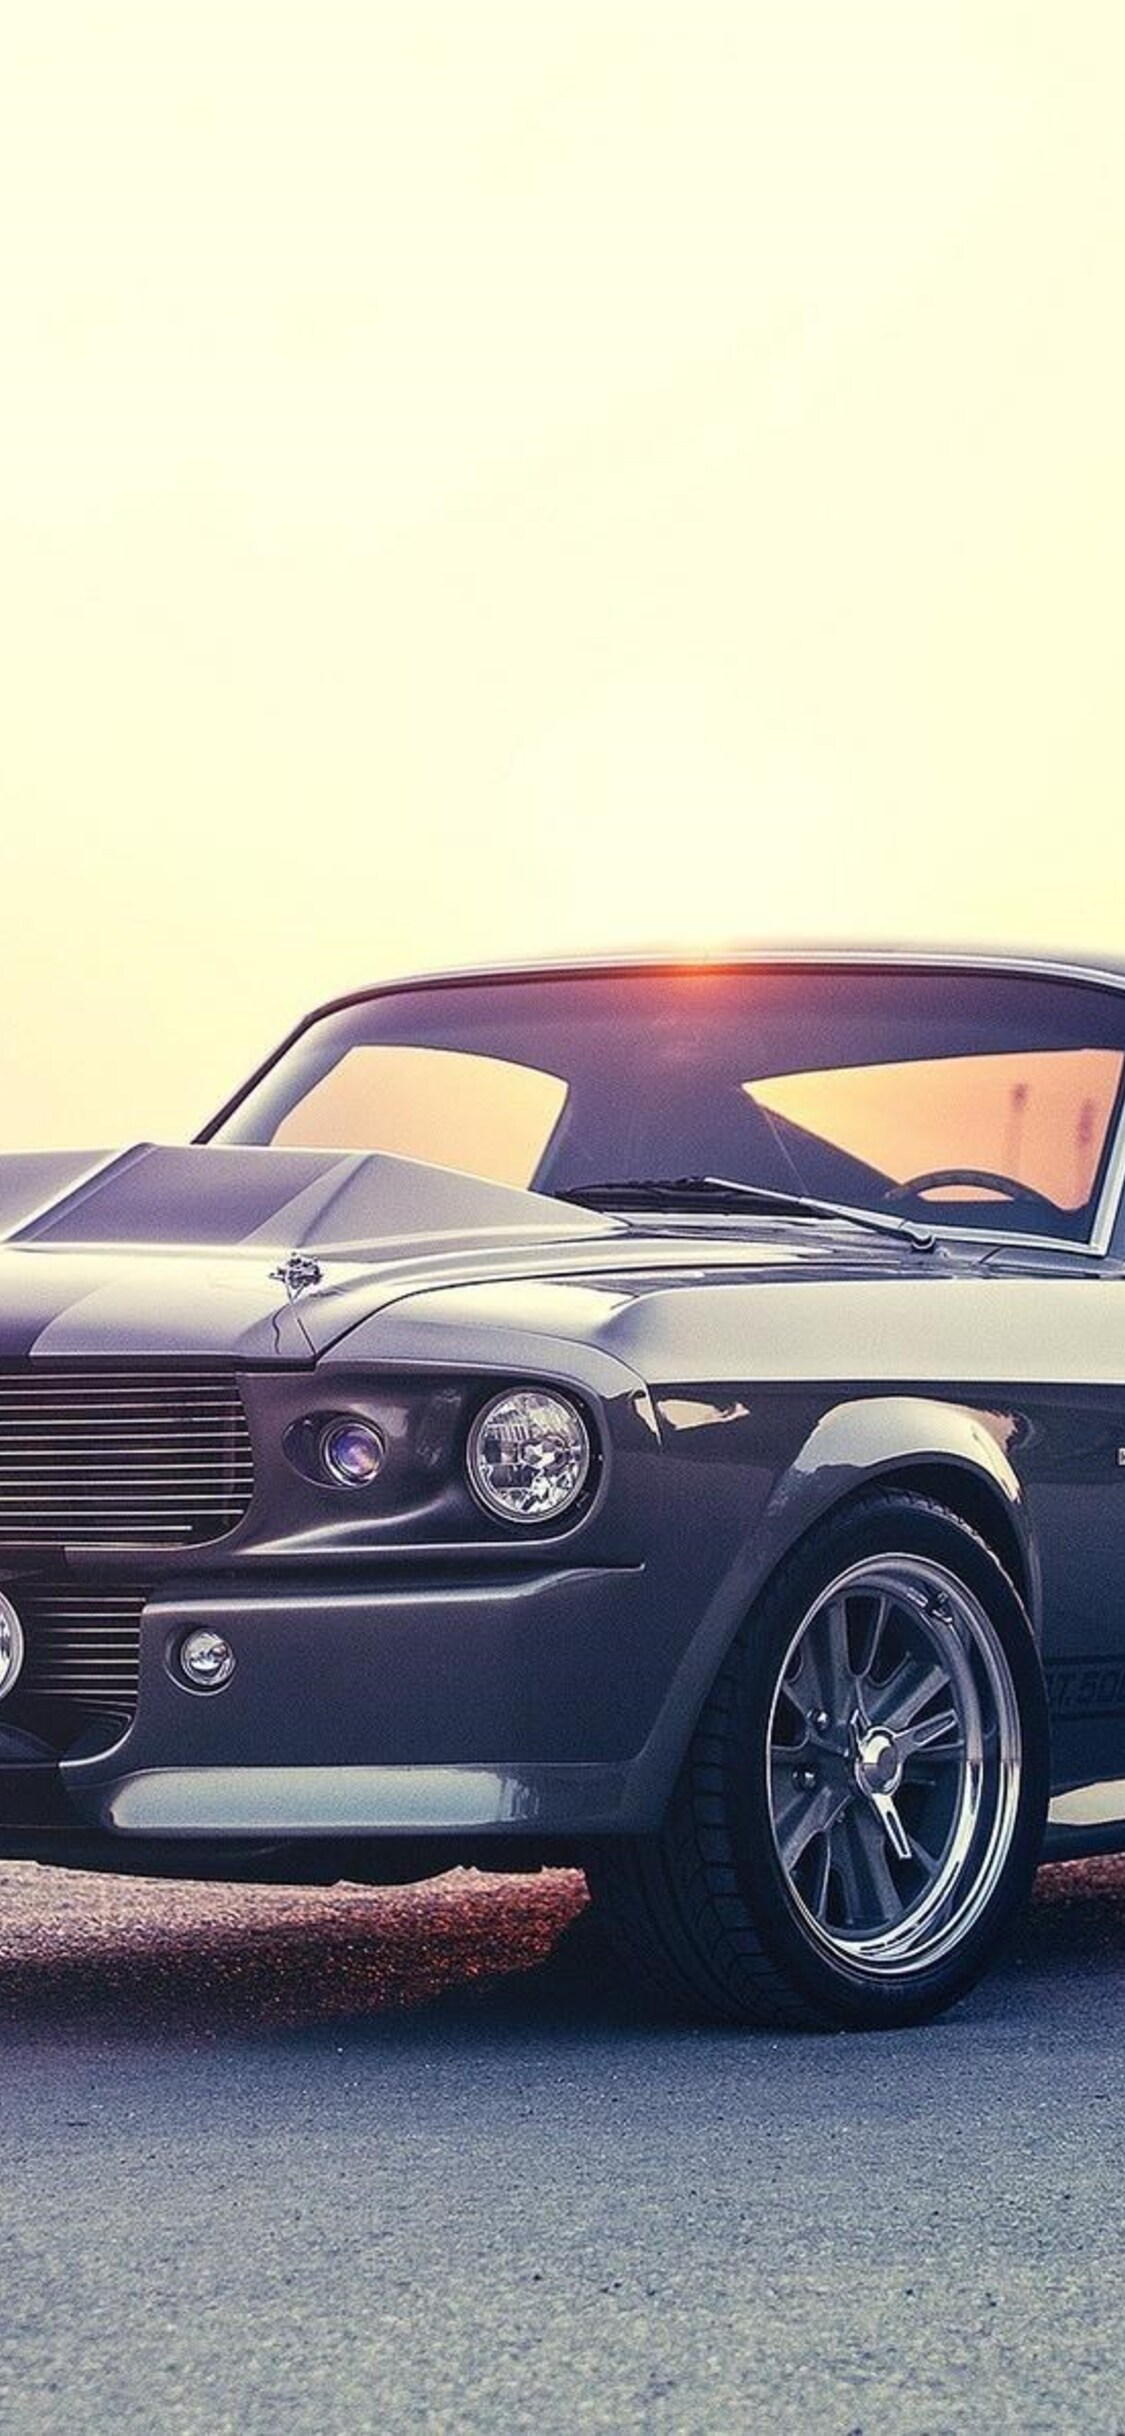 1125x2436 Ford Mustang Muscle Car Iphone Xs Iphone 10 Iphone X Hd 4k